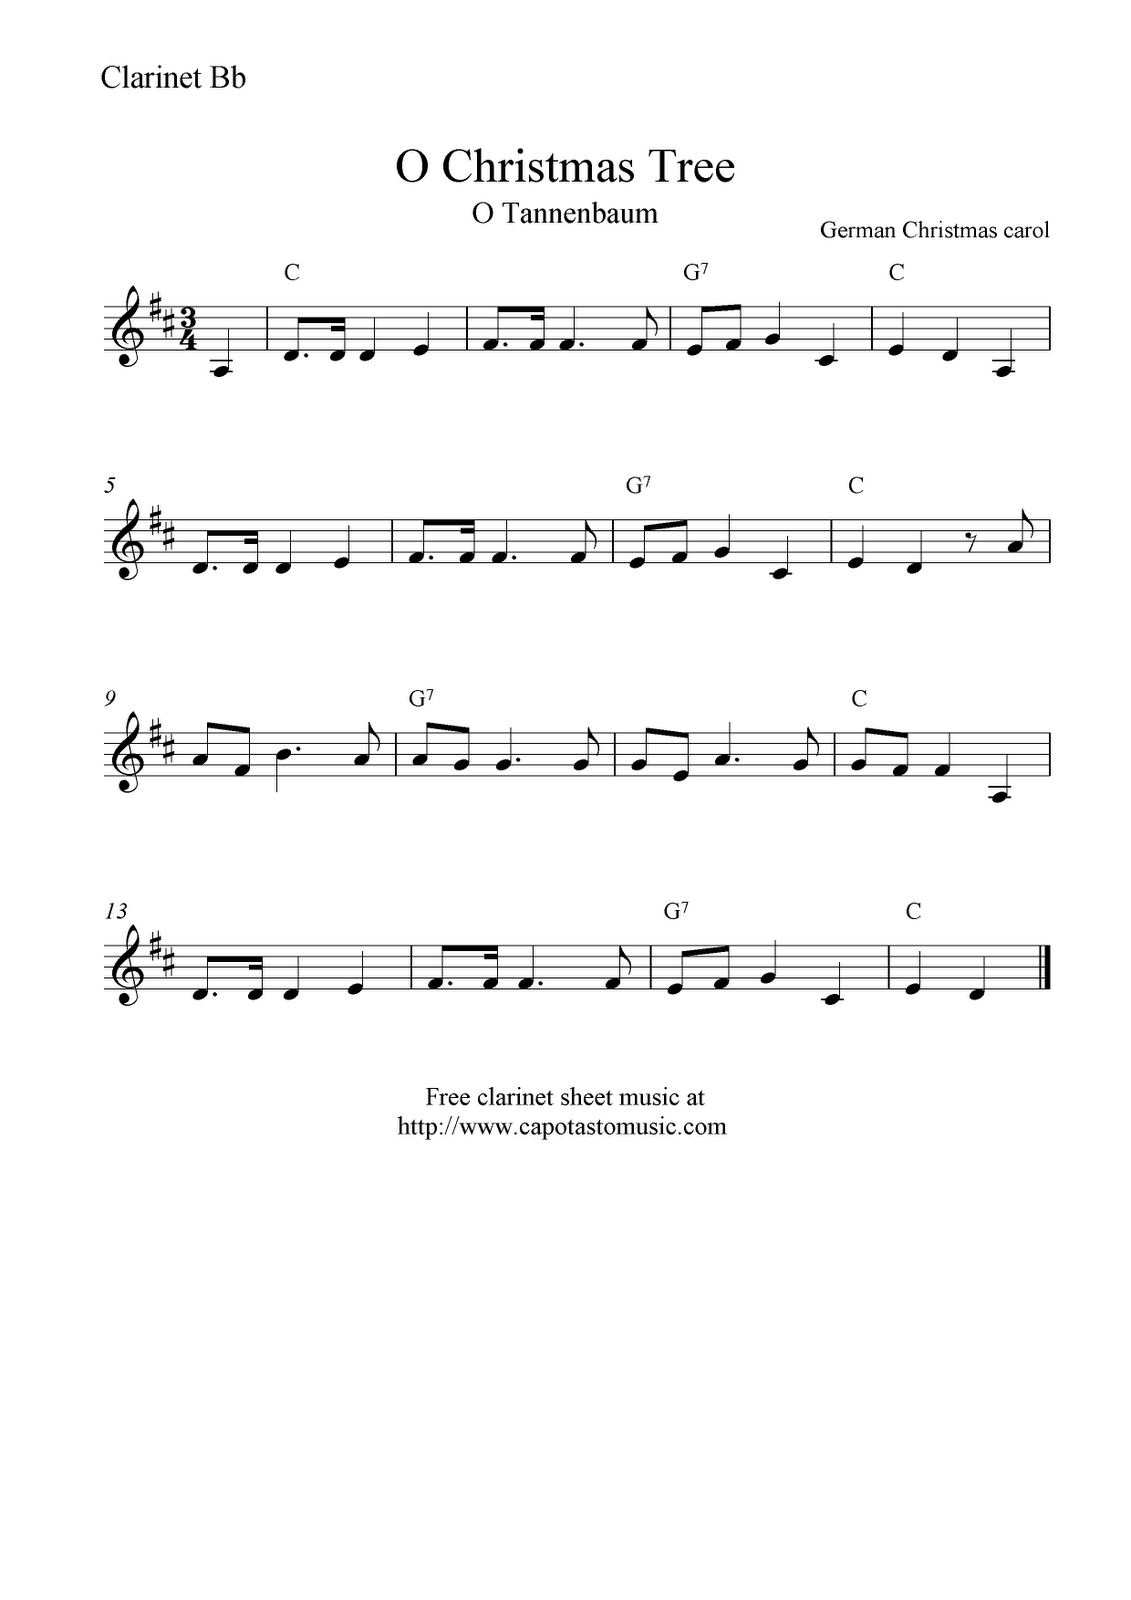 Free Sheet Music Scores: O Christmas Tree (O Tannenbaum), Free - Free Printable Christmas Sheet Music For Clarinet